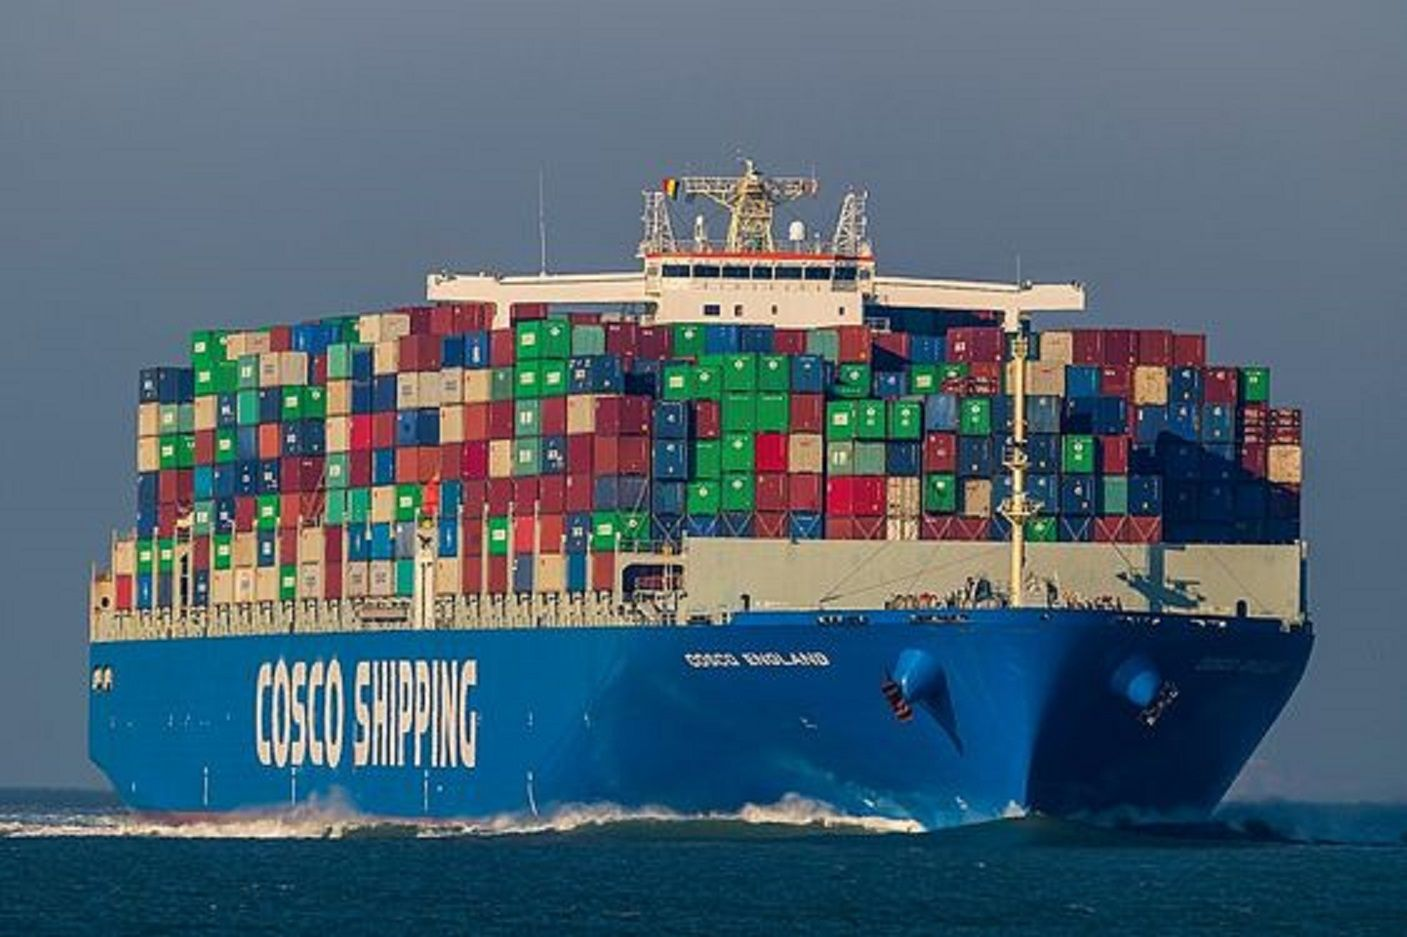 Cosco England In 2020 Cargo Shipping Maersk Line Water Crafts